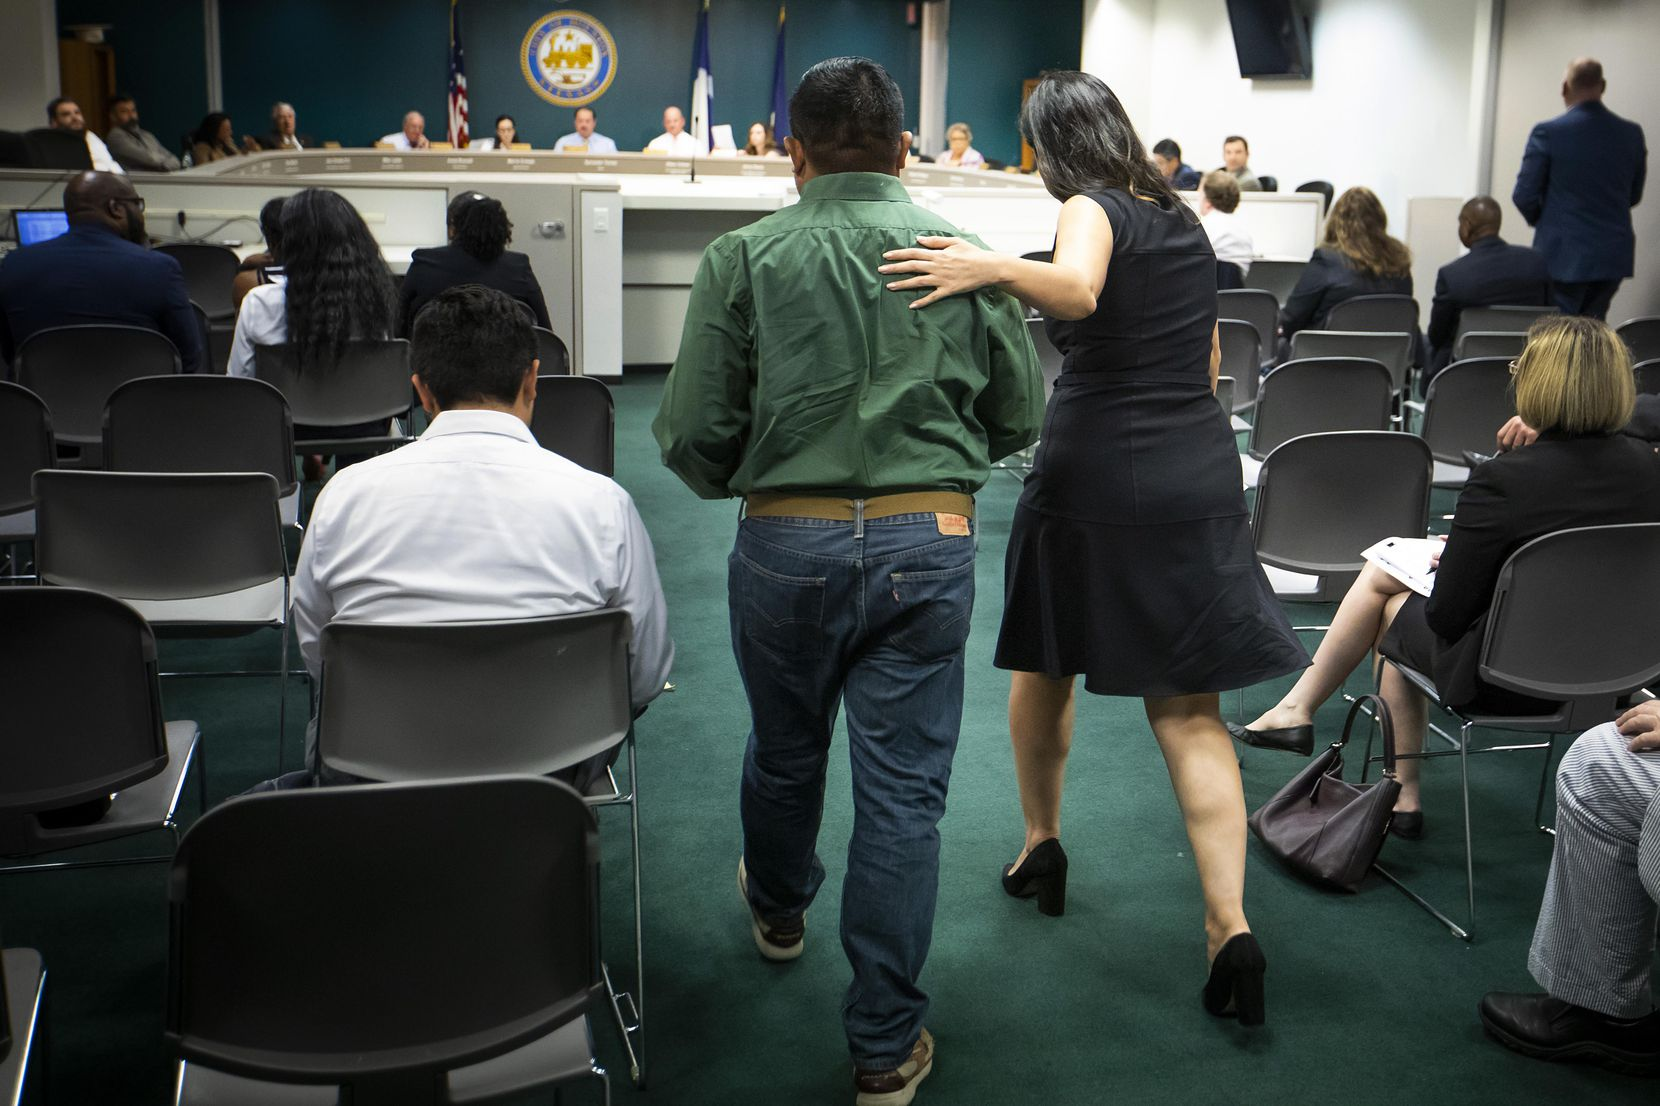 Ana Gonzalez, a policy advocate for Workers Defense Project, put her hand on Agustin Villanueva's shoulder as he prepared to testify to state lawmakers about wage theft during a hearing in Houston on July 24, 2018. Villanueva said he was not paid for repairing houses after Hurricane Harvey.